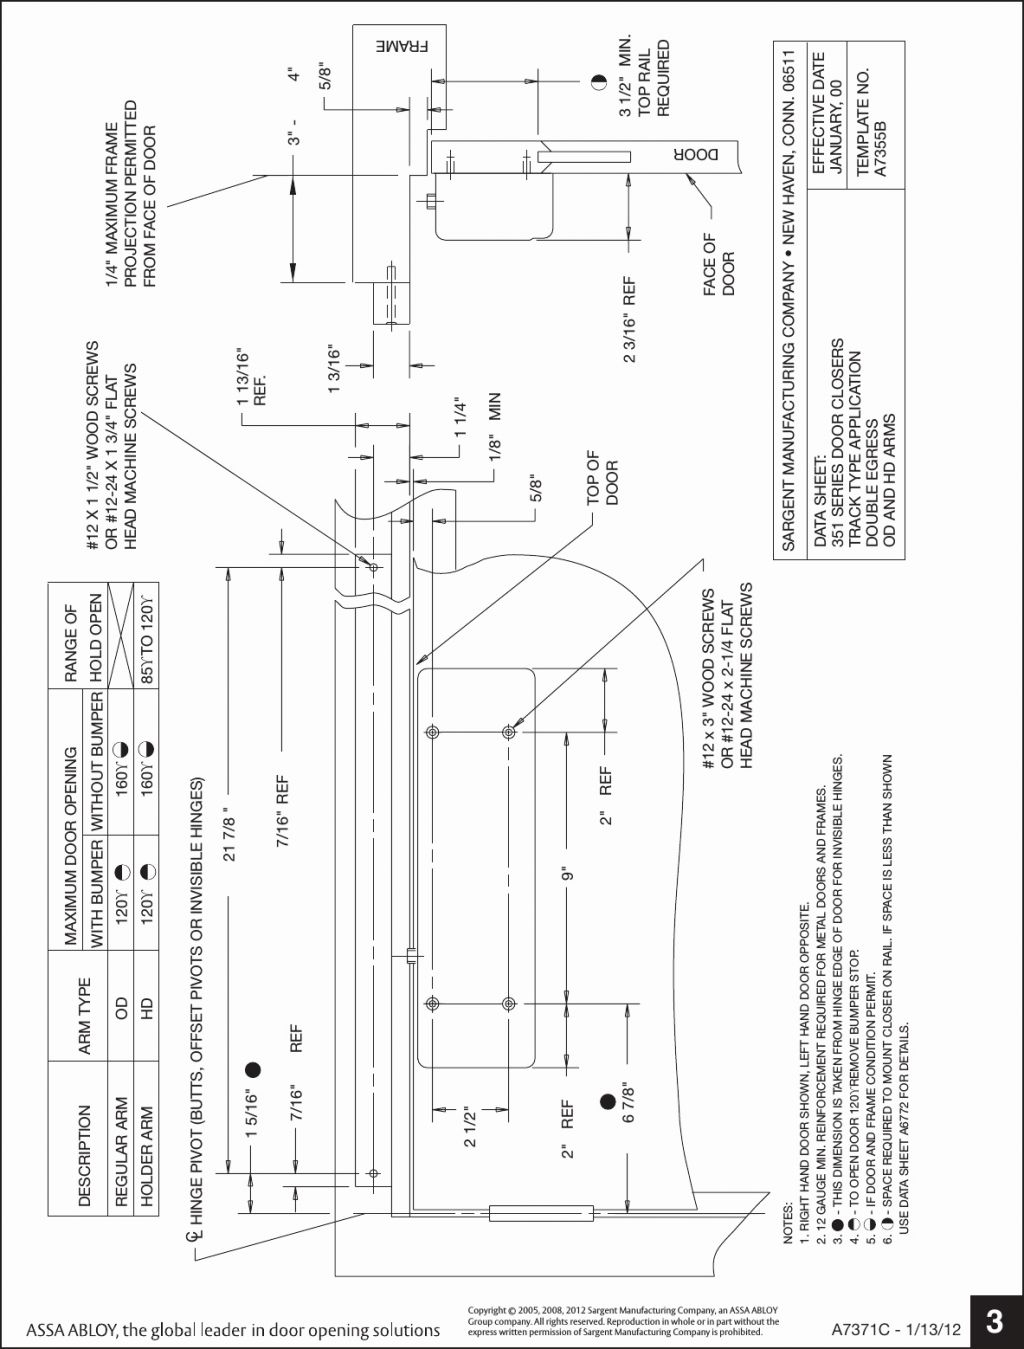 white rodgers 90 113 wiring diagram Collection-White Rodgers 90 113 Wiring Diagram Beautiful Wiring Diagram Receptacle Wiring Diagram Awesome How to Wire 9-t